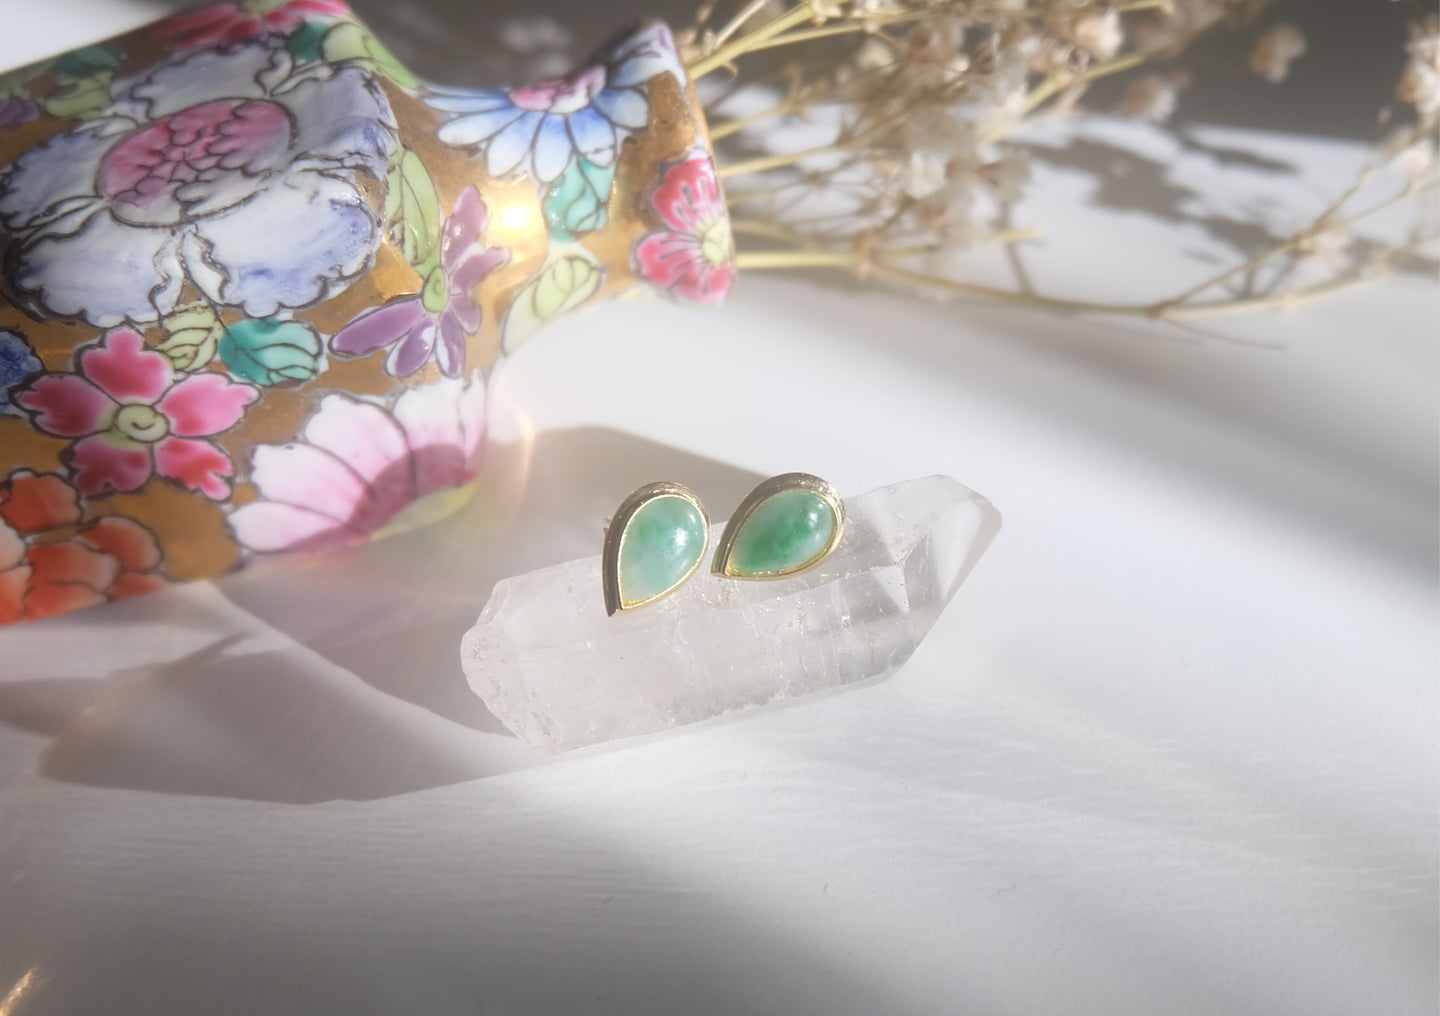 Teardrop Earrings I